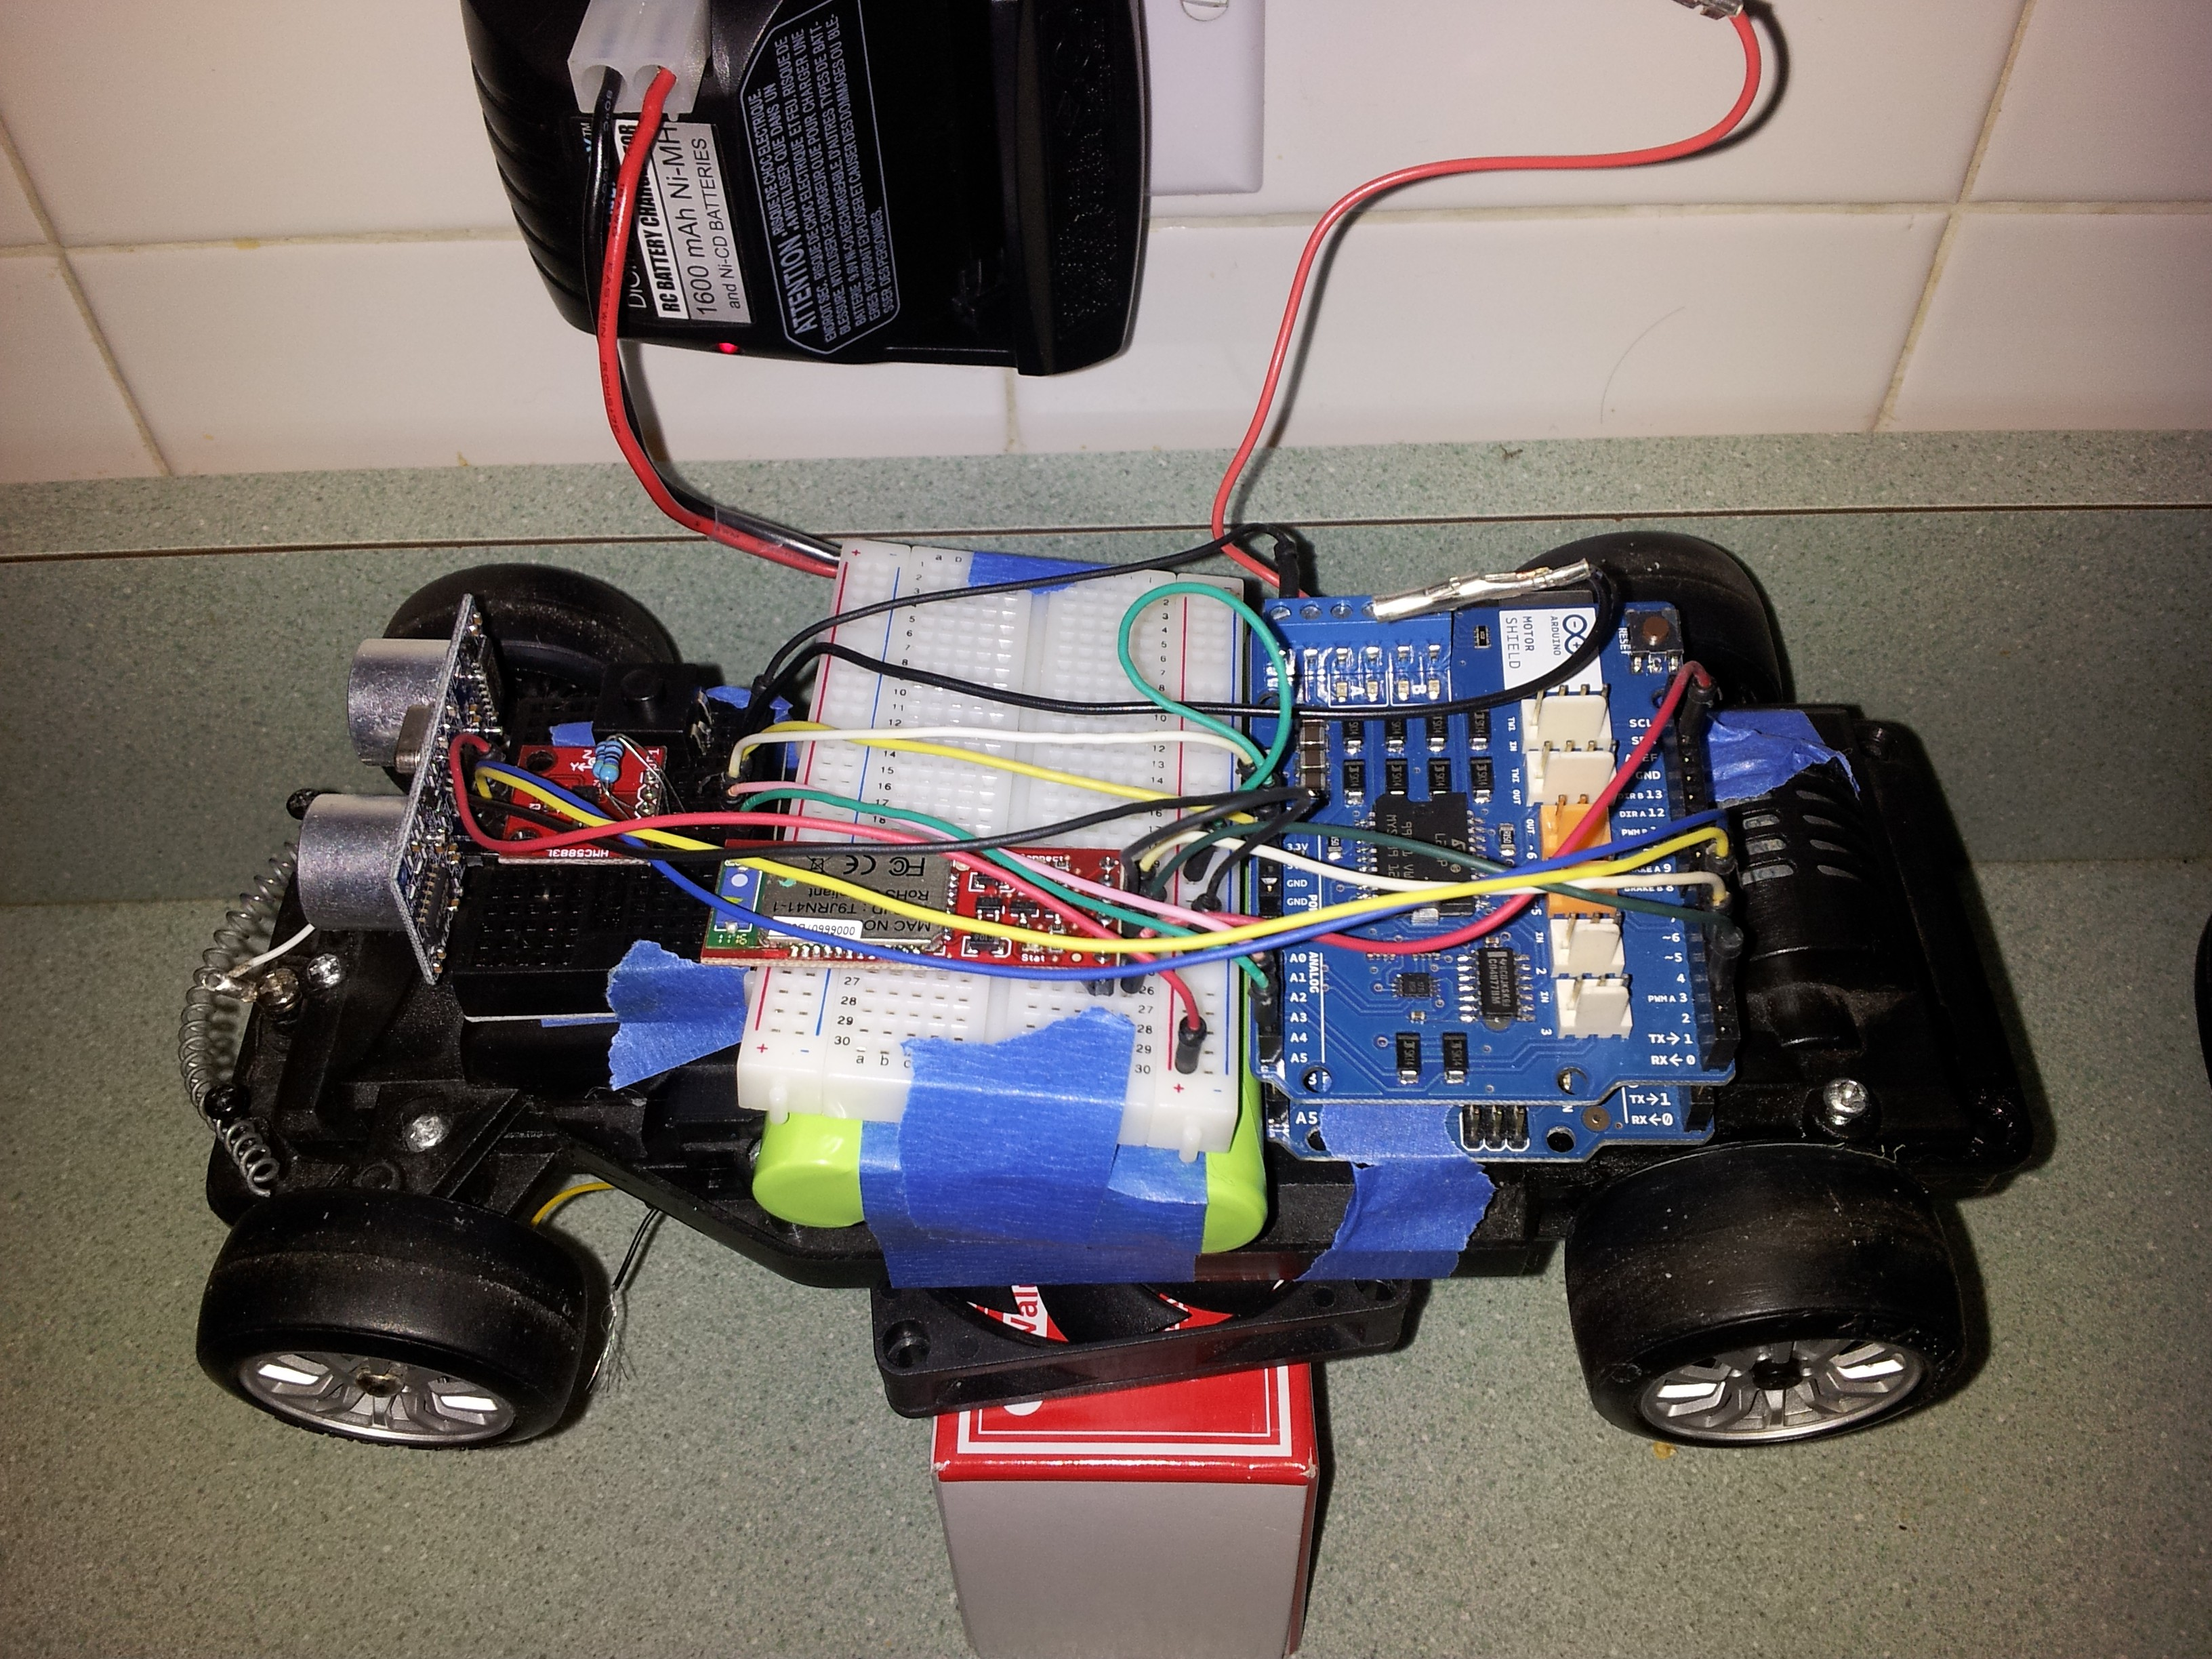 Arduino self driving car gets bluetooth python interface